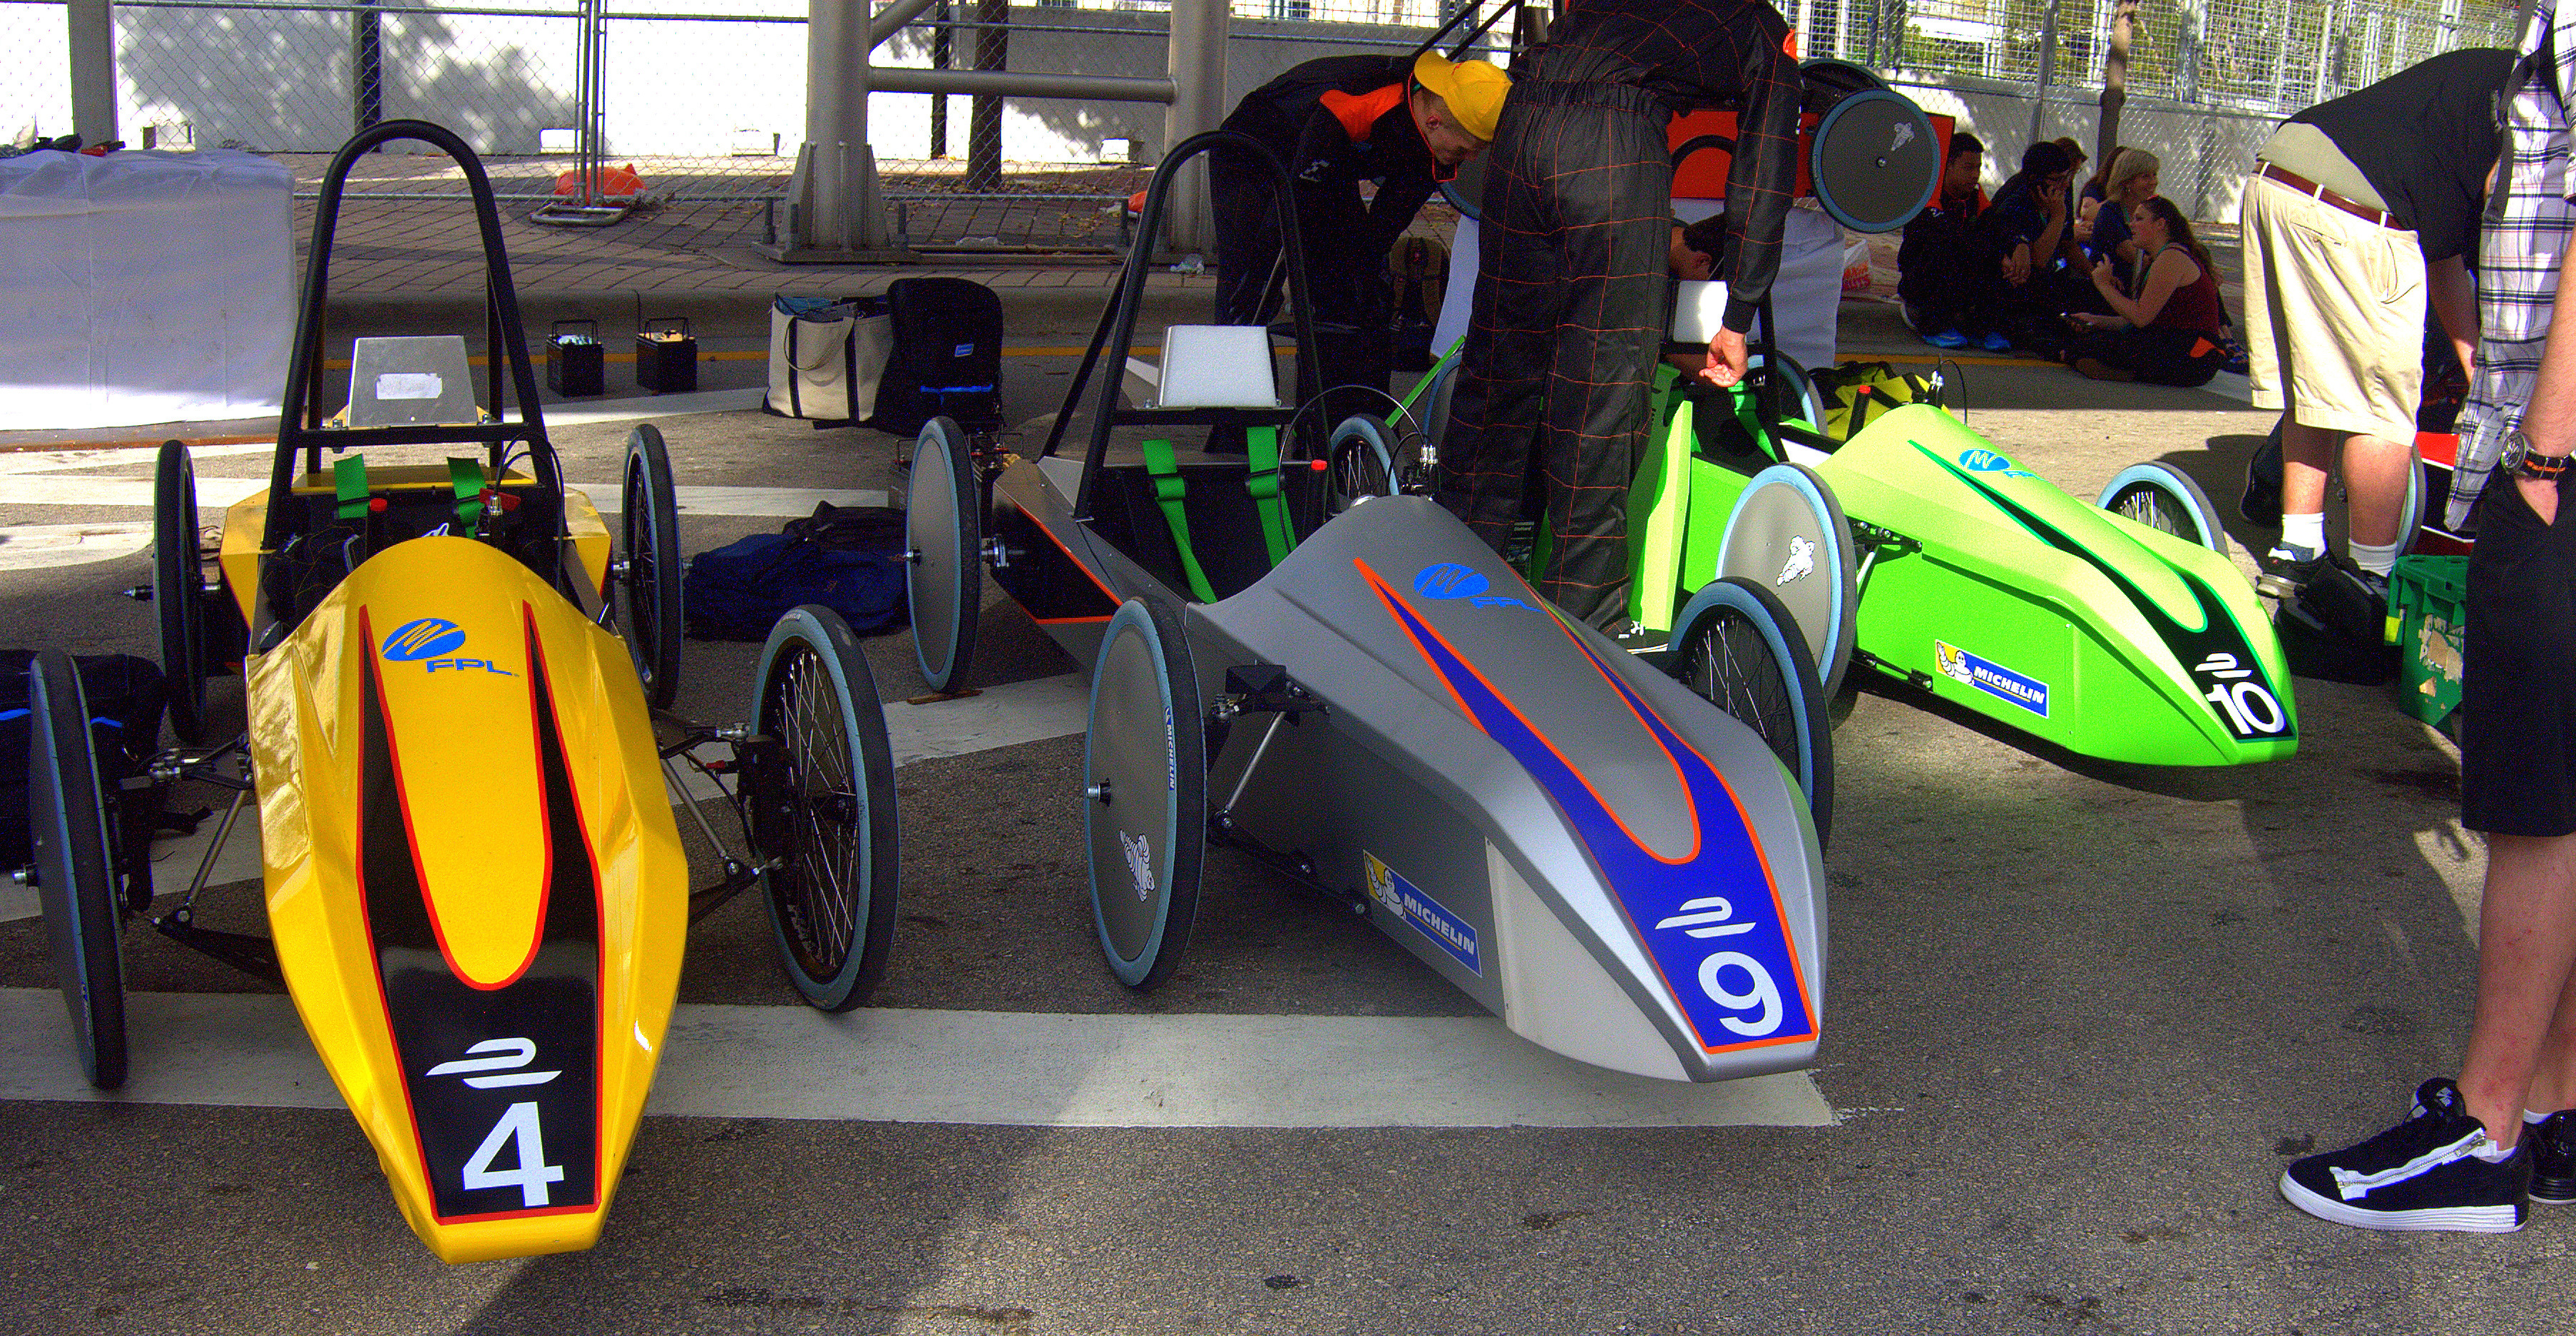 We take a look at the Formula E Schools race cars before the event